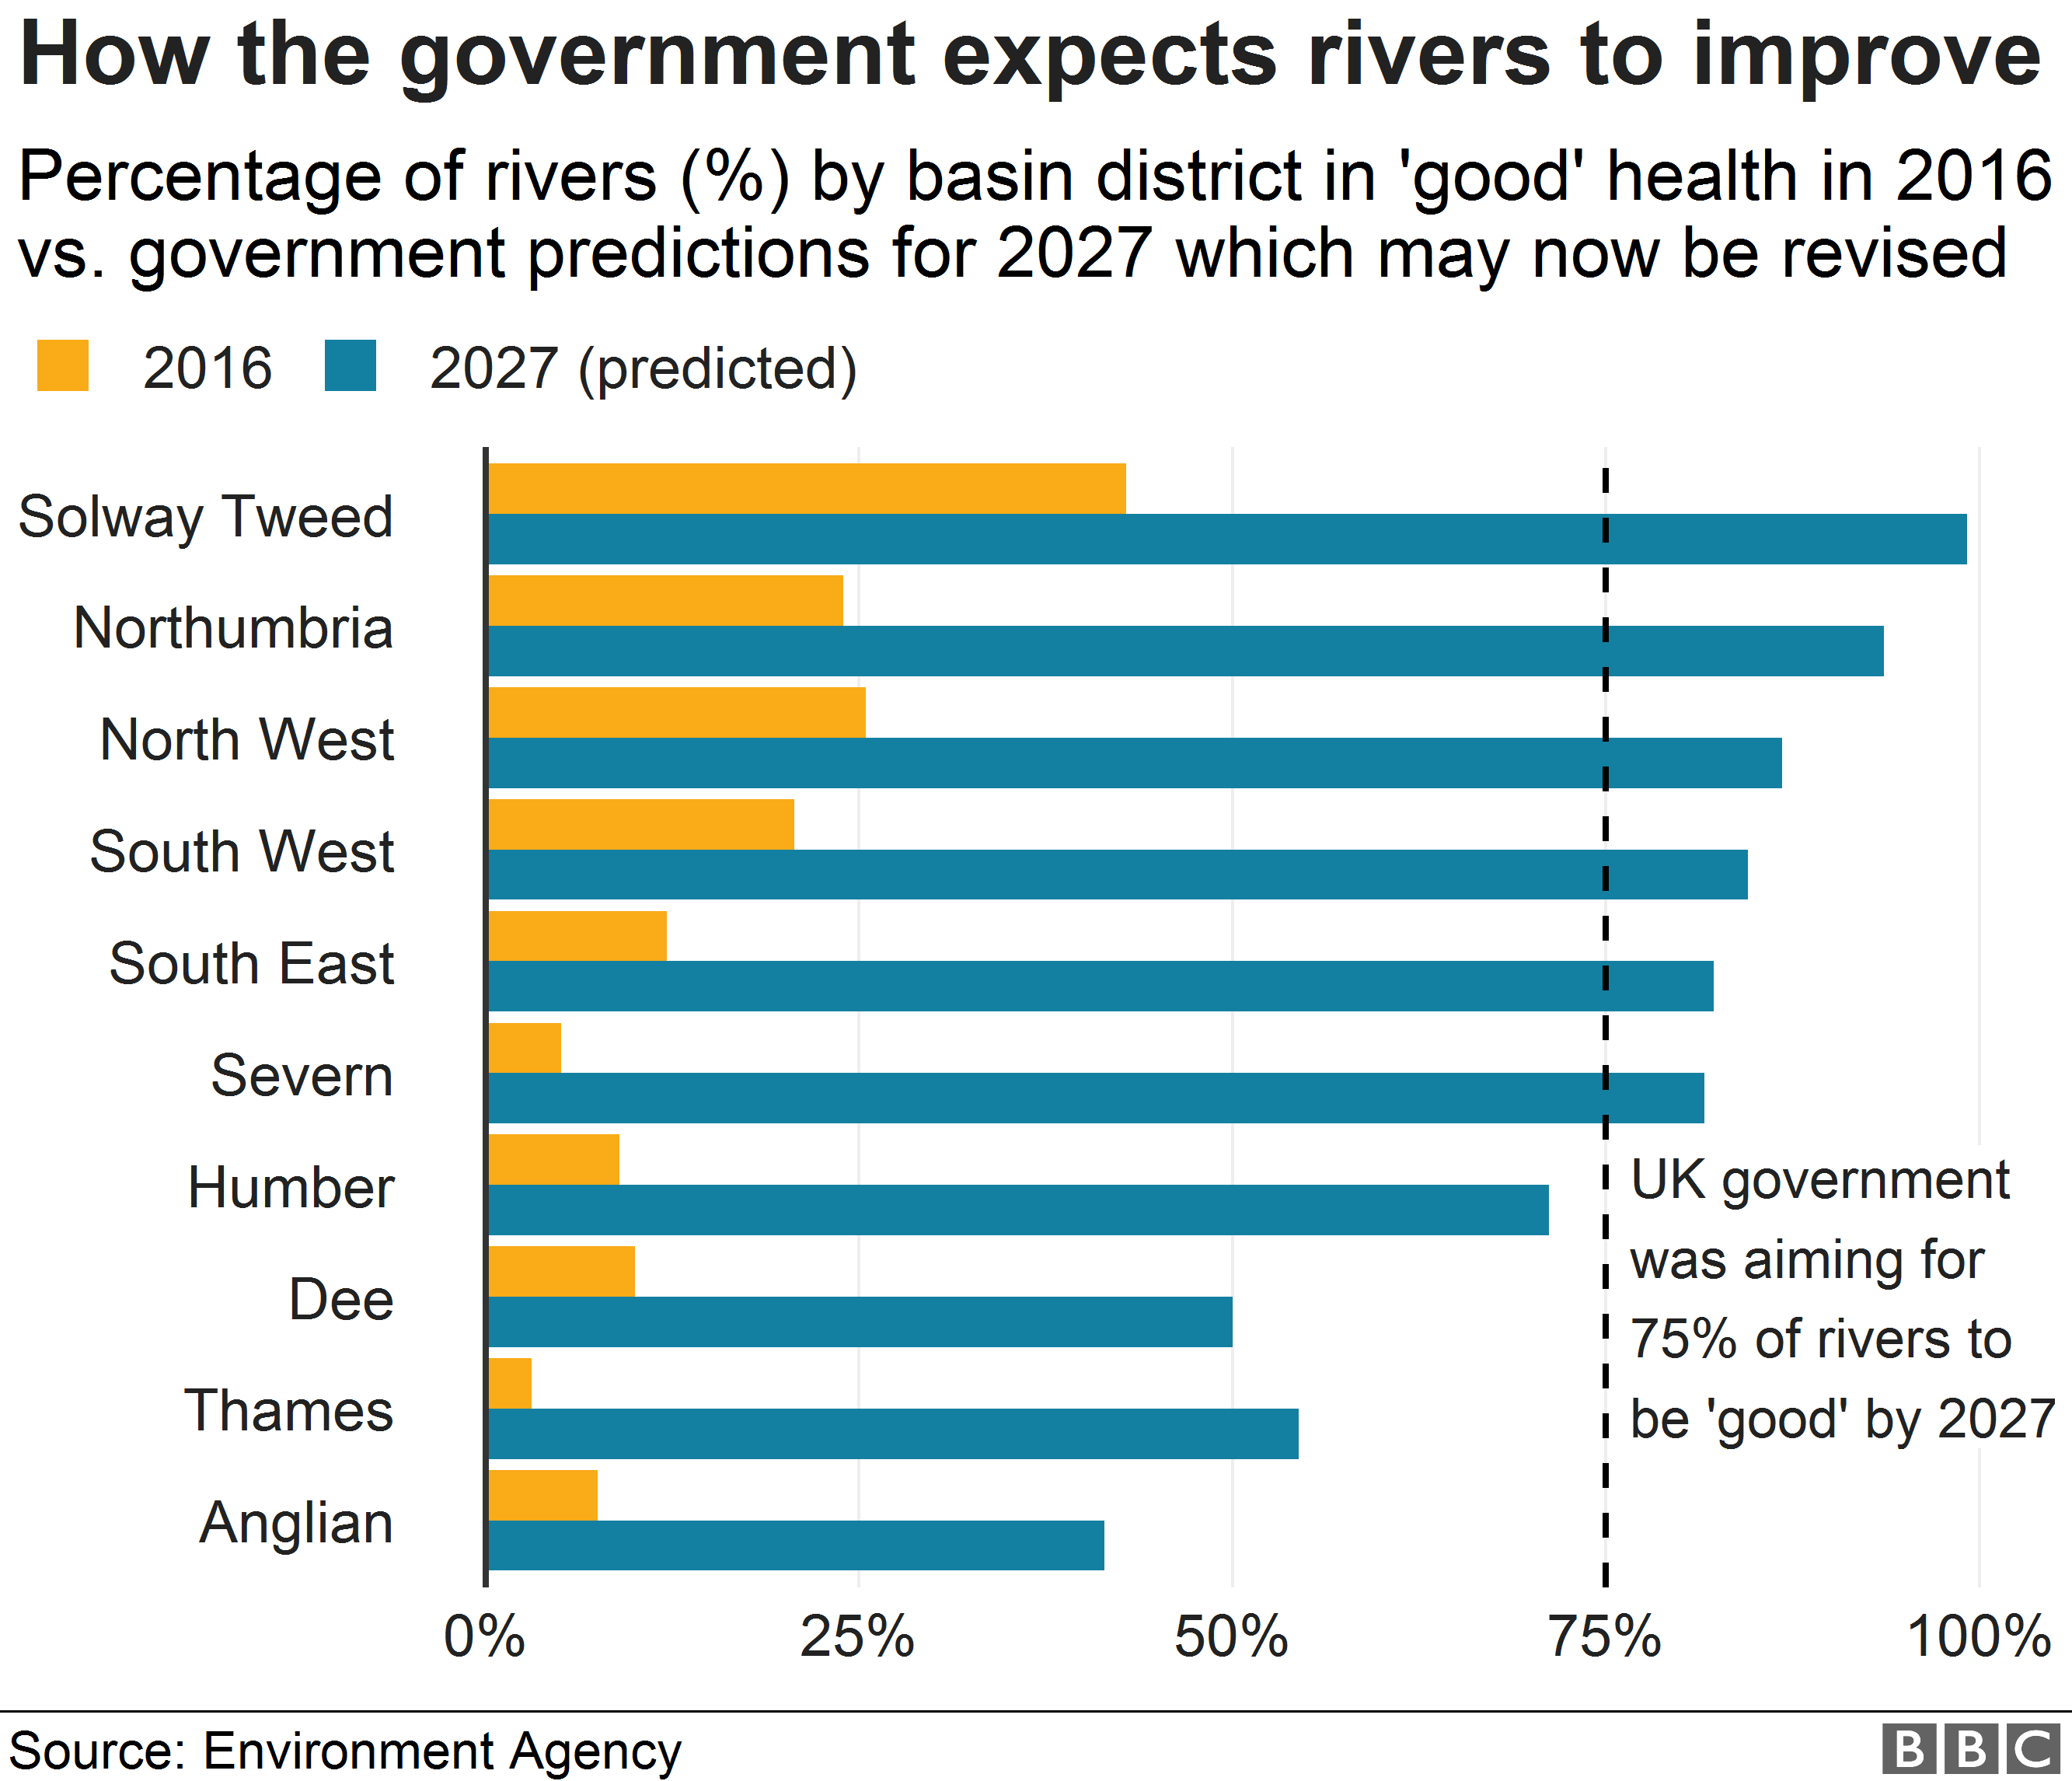 Chart showing river status in 2016 and predicted status in 2027